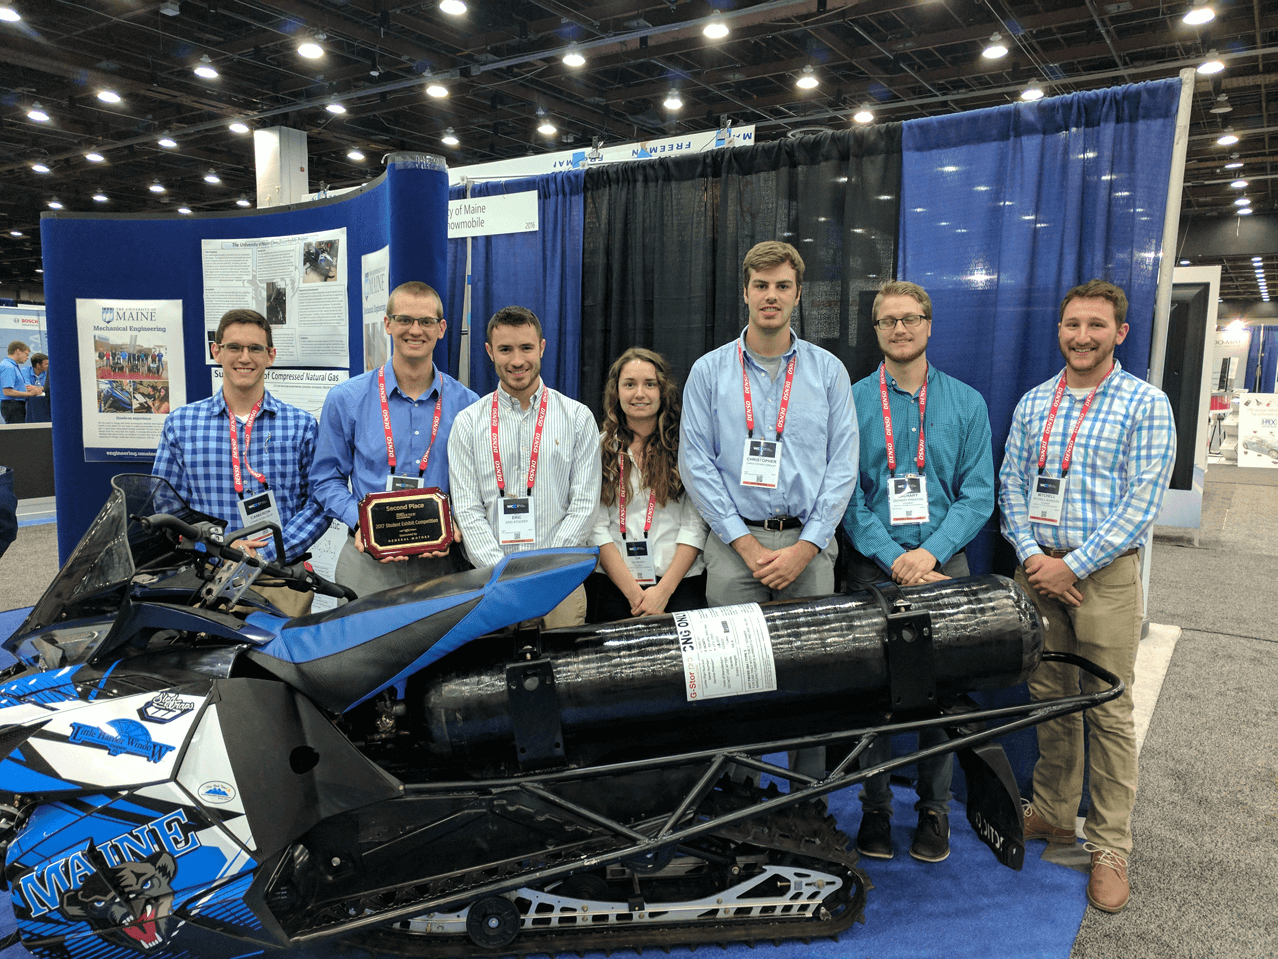 Sae World Congress >> Umaine Clean Snowmobile Team Brings Home 2nd From Sae World